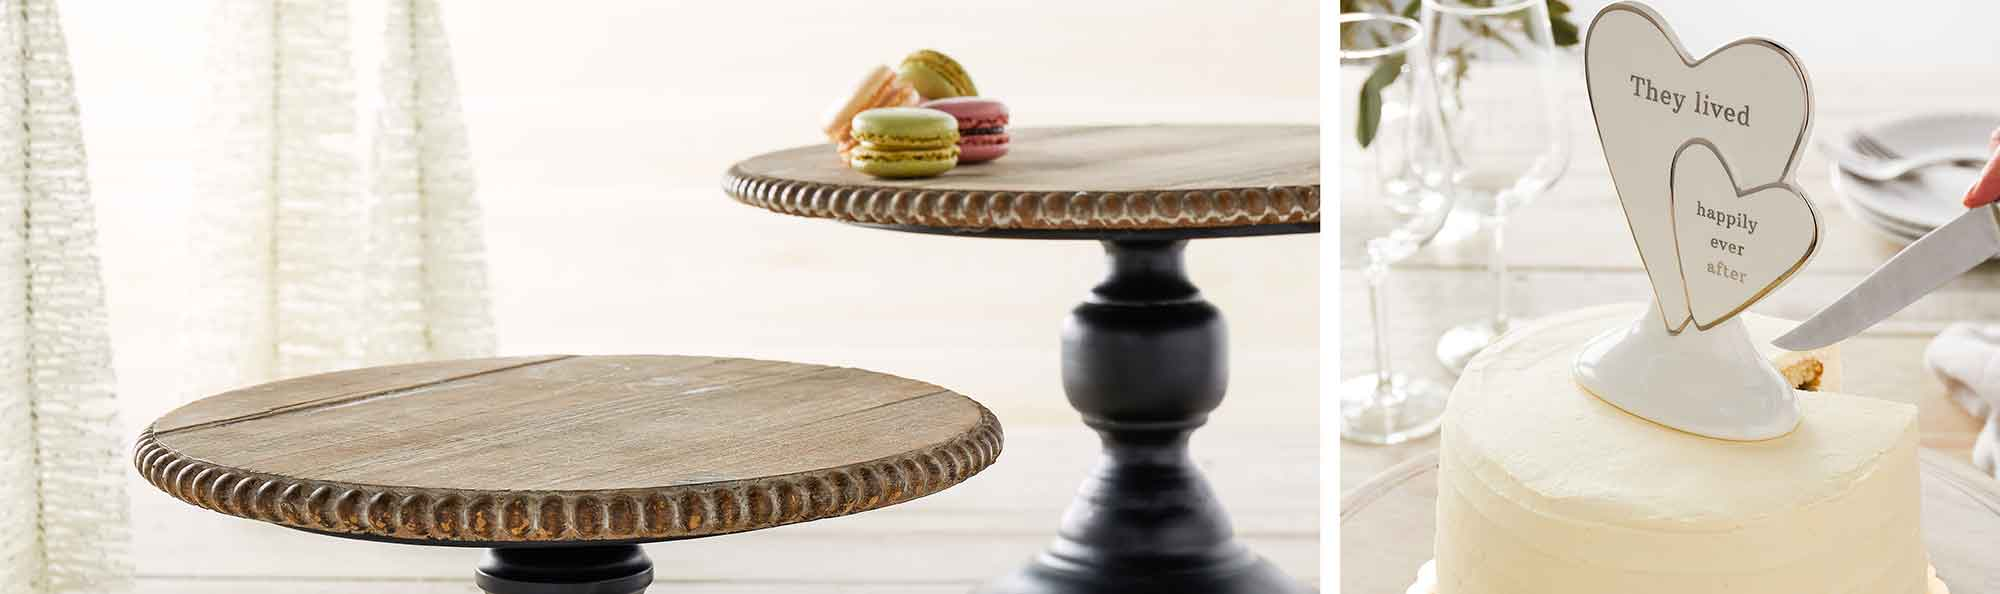 cake stand with little sandwiches on top and another photo of cake topper with hearts